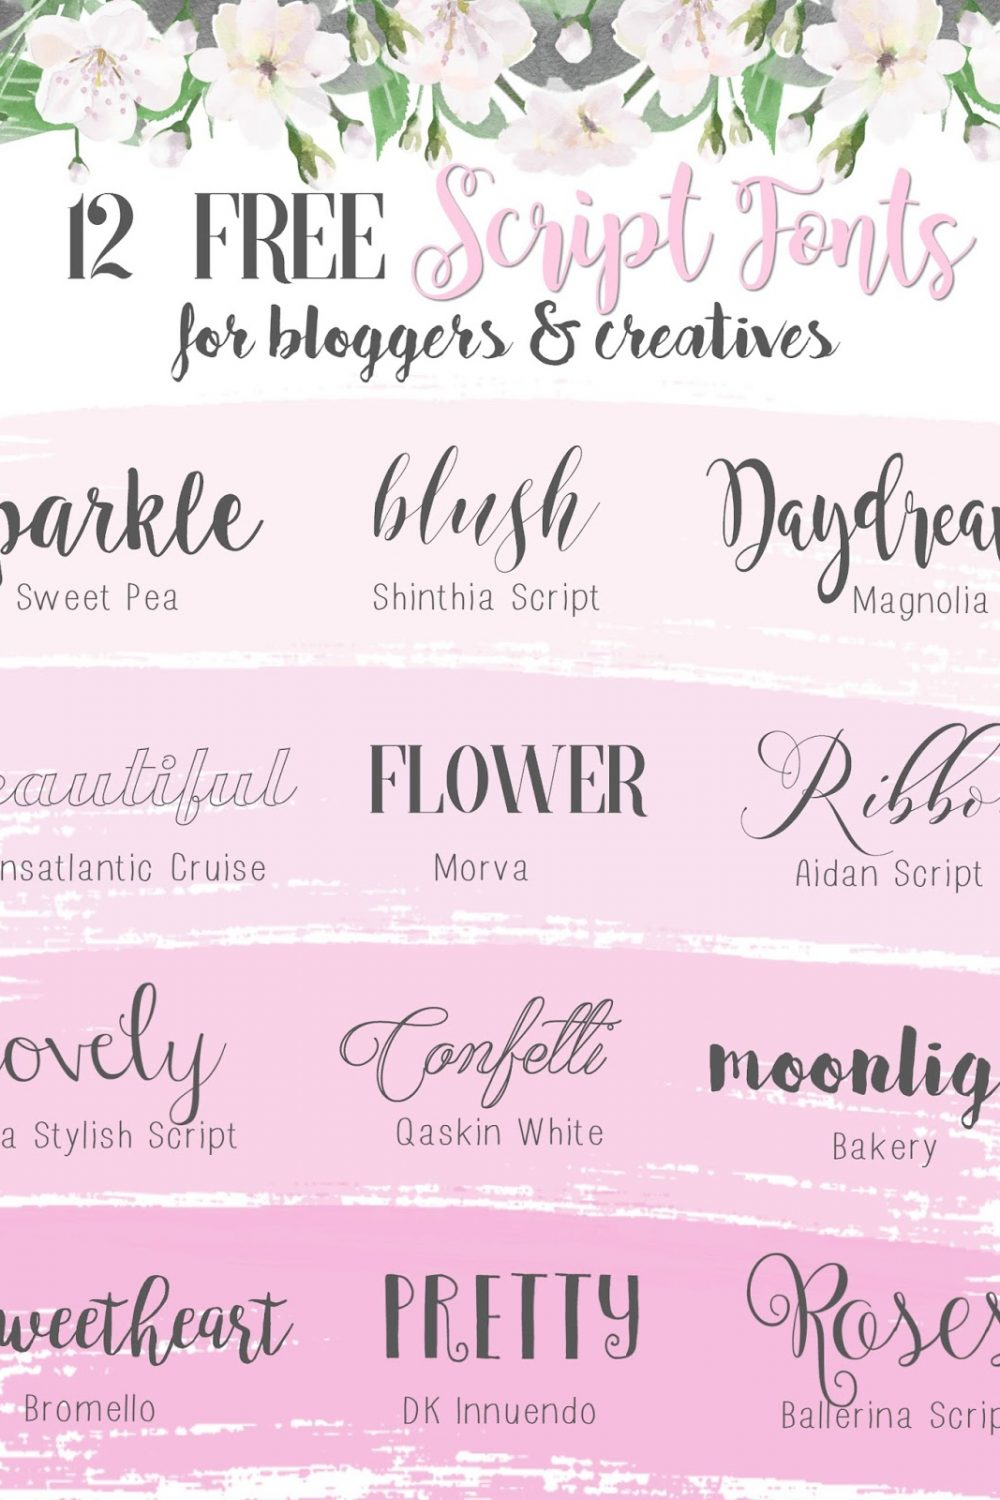 My Favourite Free Script Fonts For Blogging